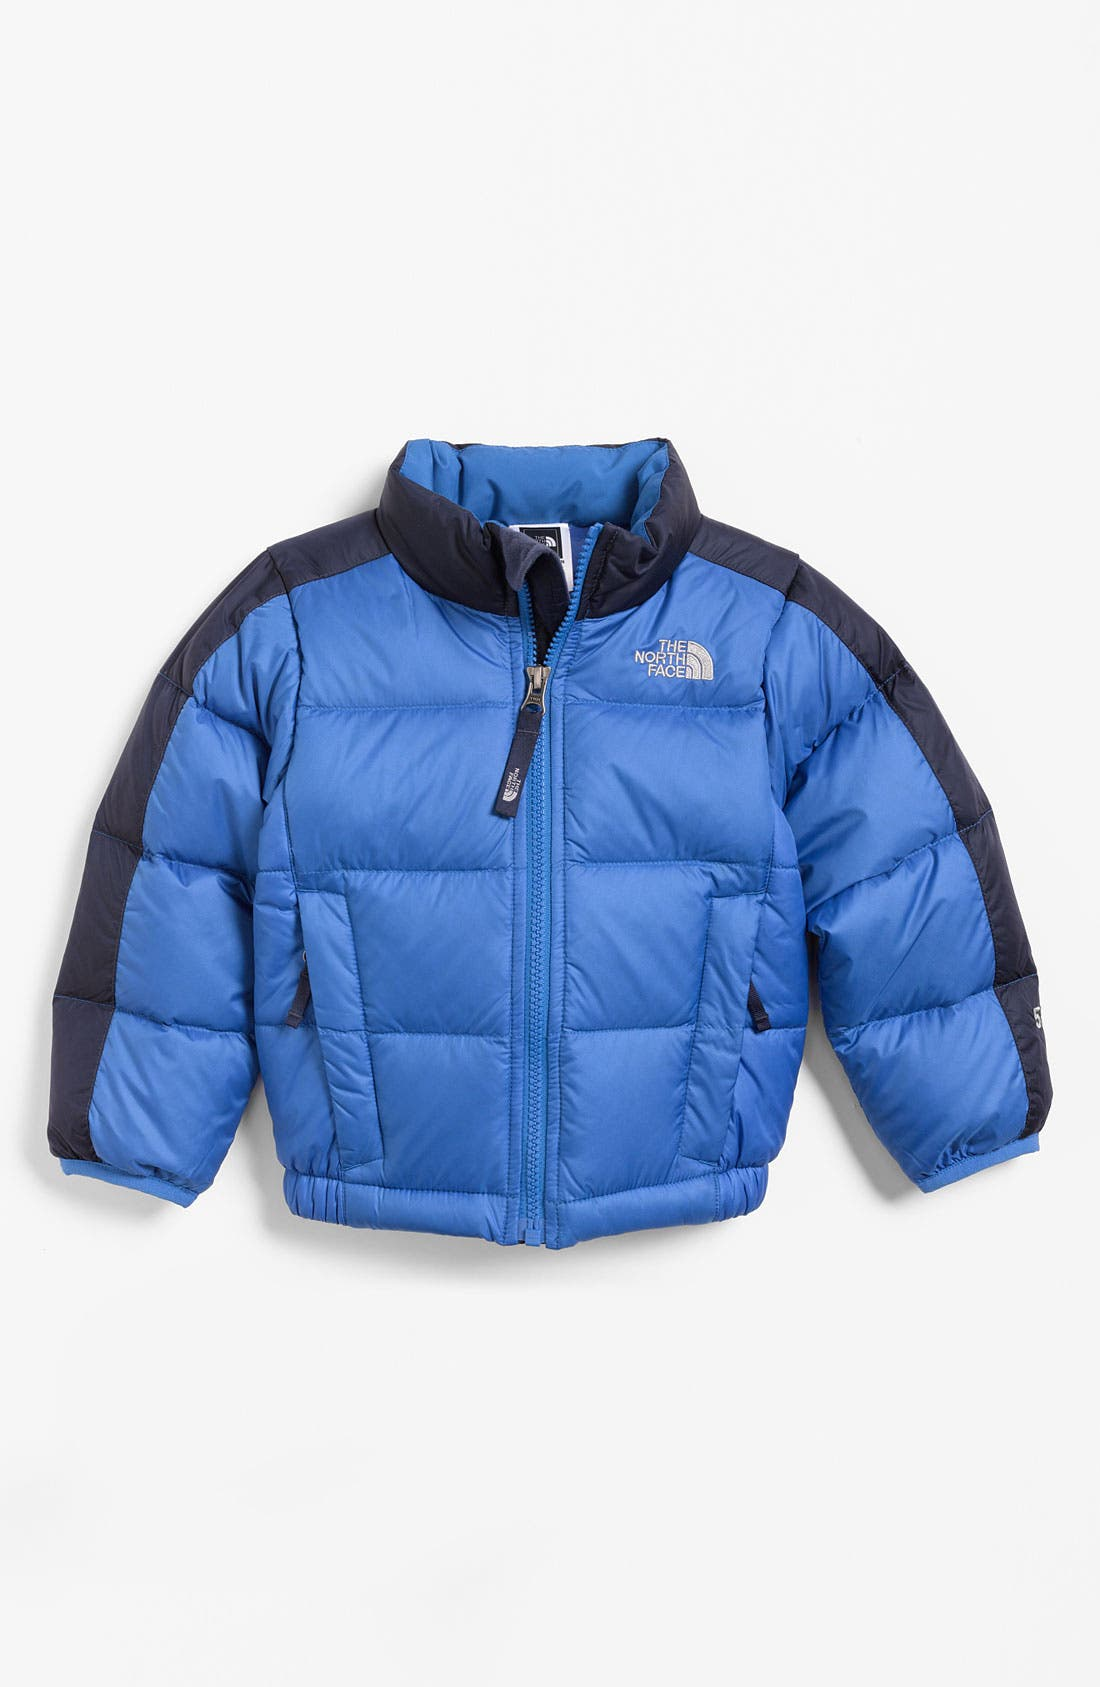 Main Image - The North Face 'Aconcagua' Jacket (Toddler) (Nordstrom Exclusive)